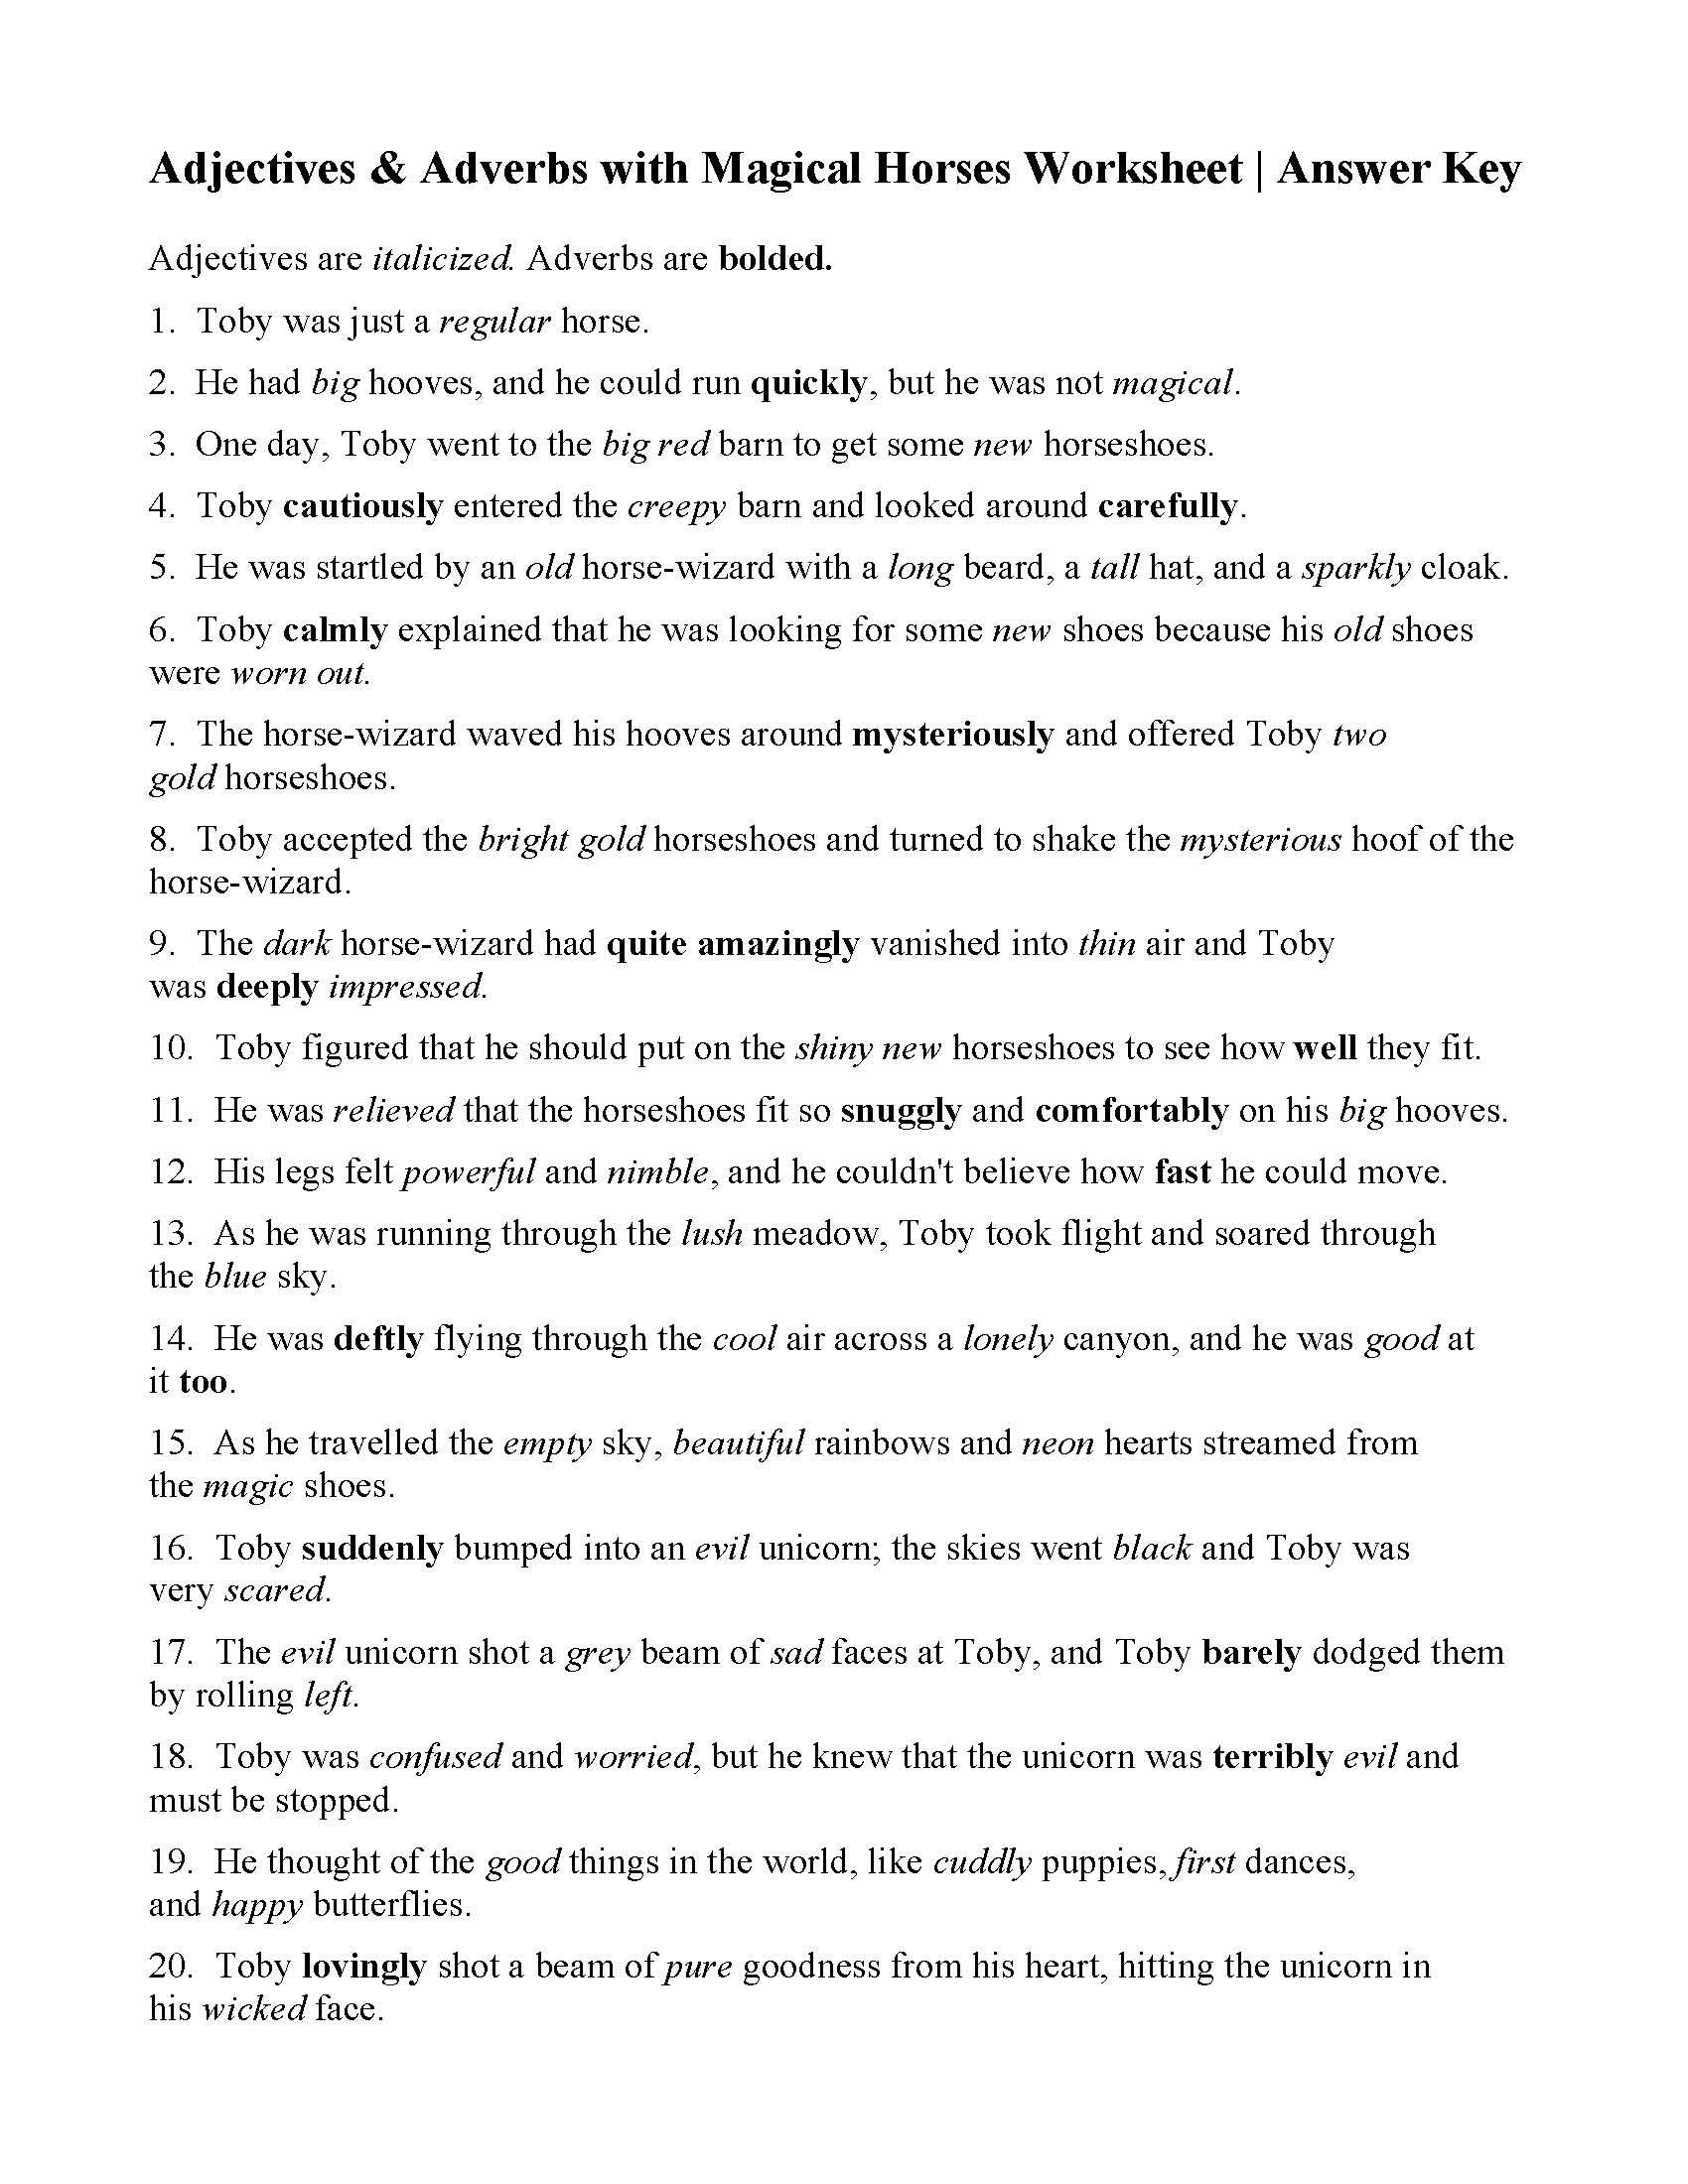 This Is The Answer Key For The Adjectives And Adverbs With Magical Horses Worksheet Adjectives Adverbs Word Problem Worksheets